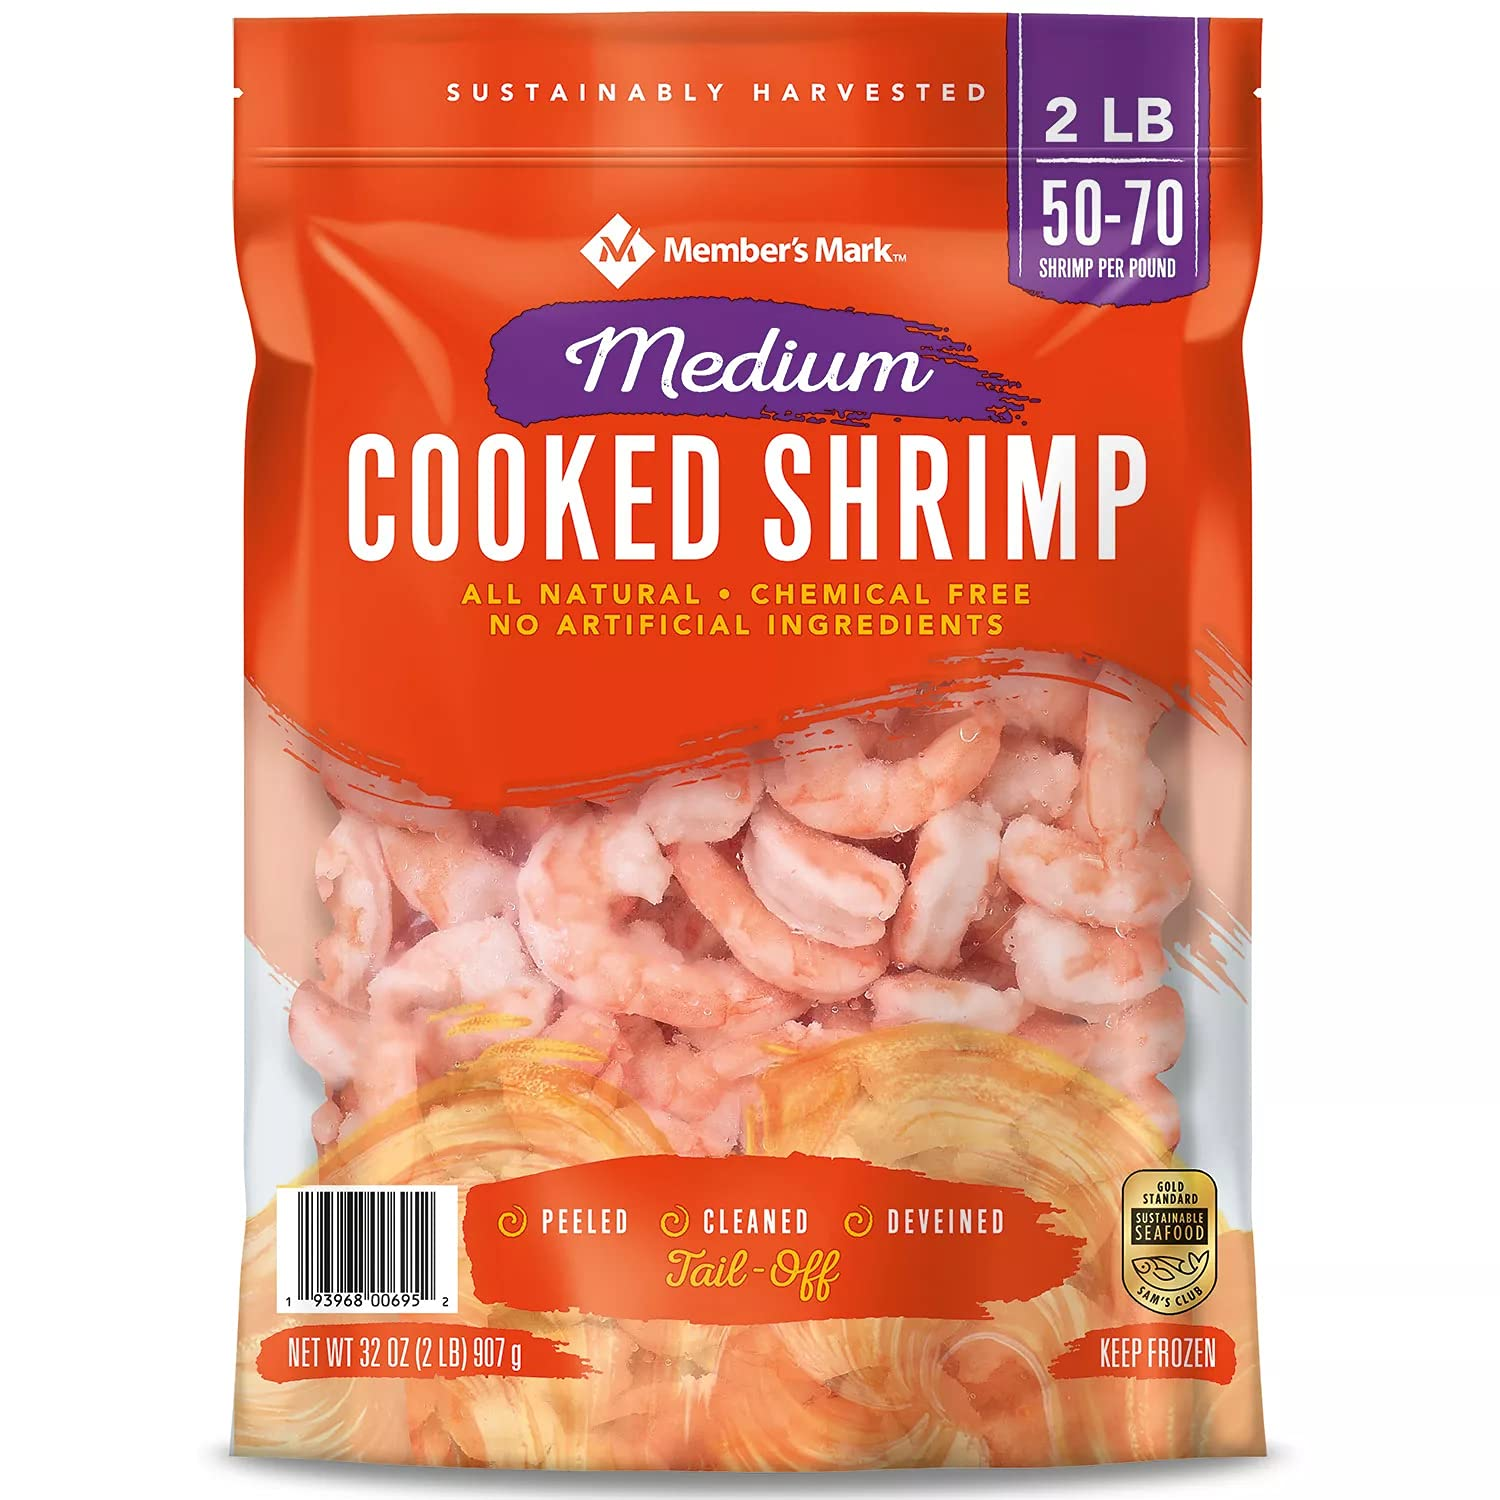 Cooked Shrimp Medium Tail Off Fat Free b 2 lb. Chemical Manufacturer regenerated 35% OFF product and